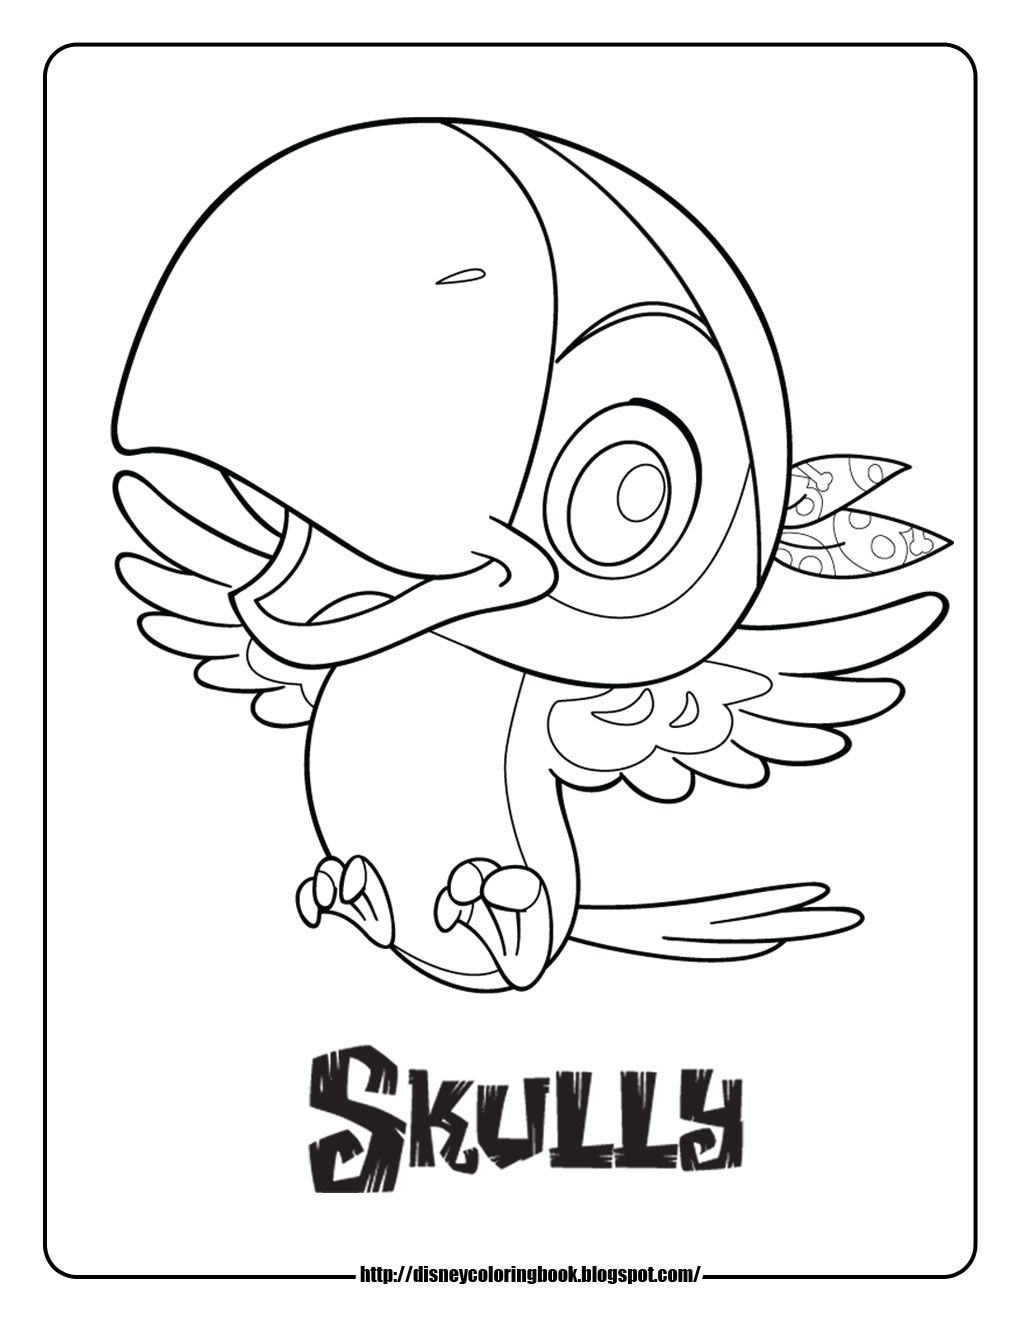 jake and the never land pirates coloring pages coloring sheets skully - Disney Jr Coloring Pages Print